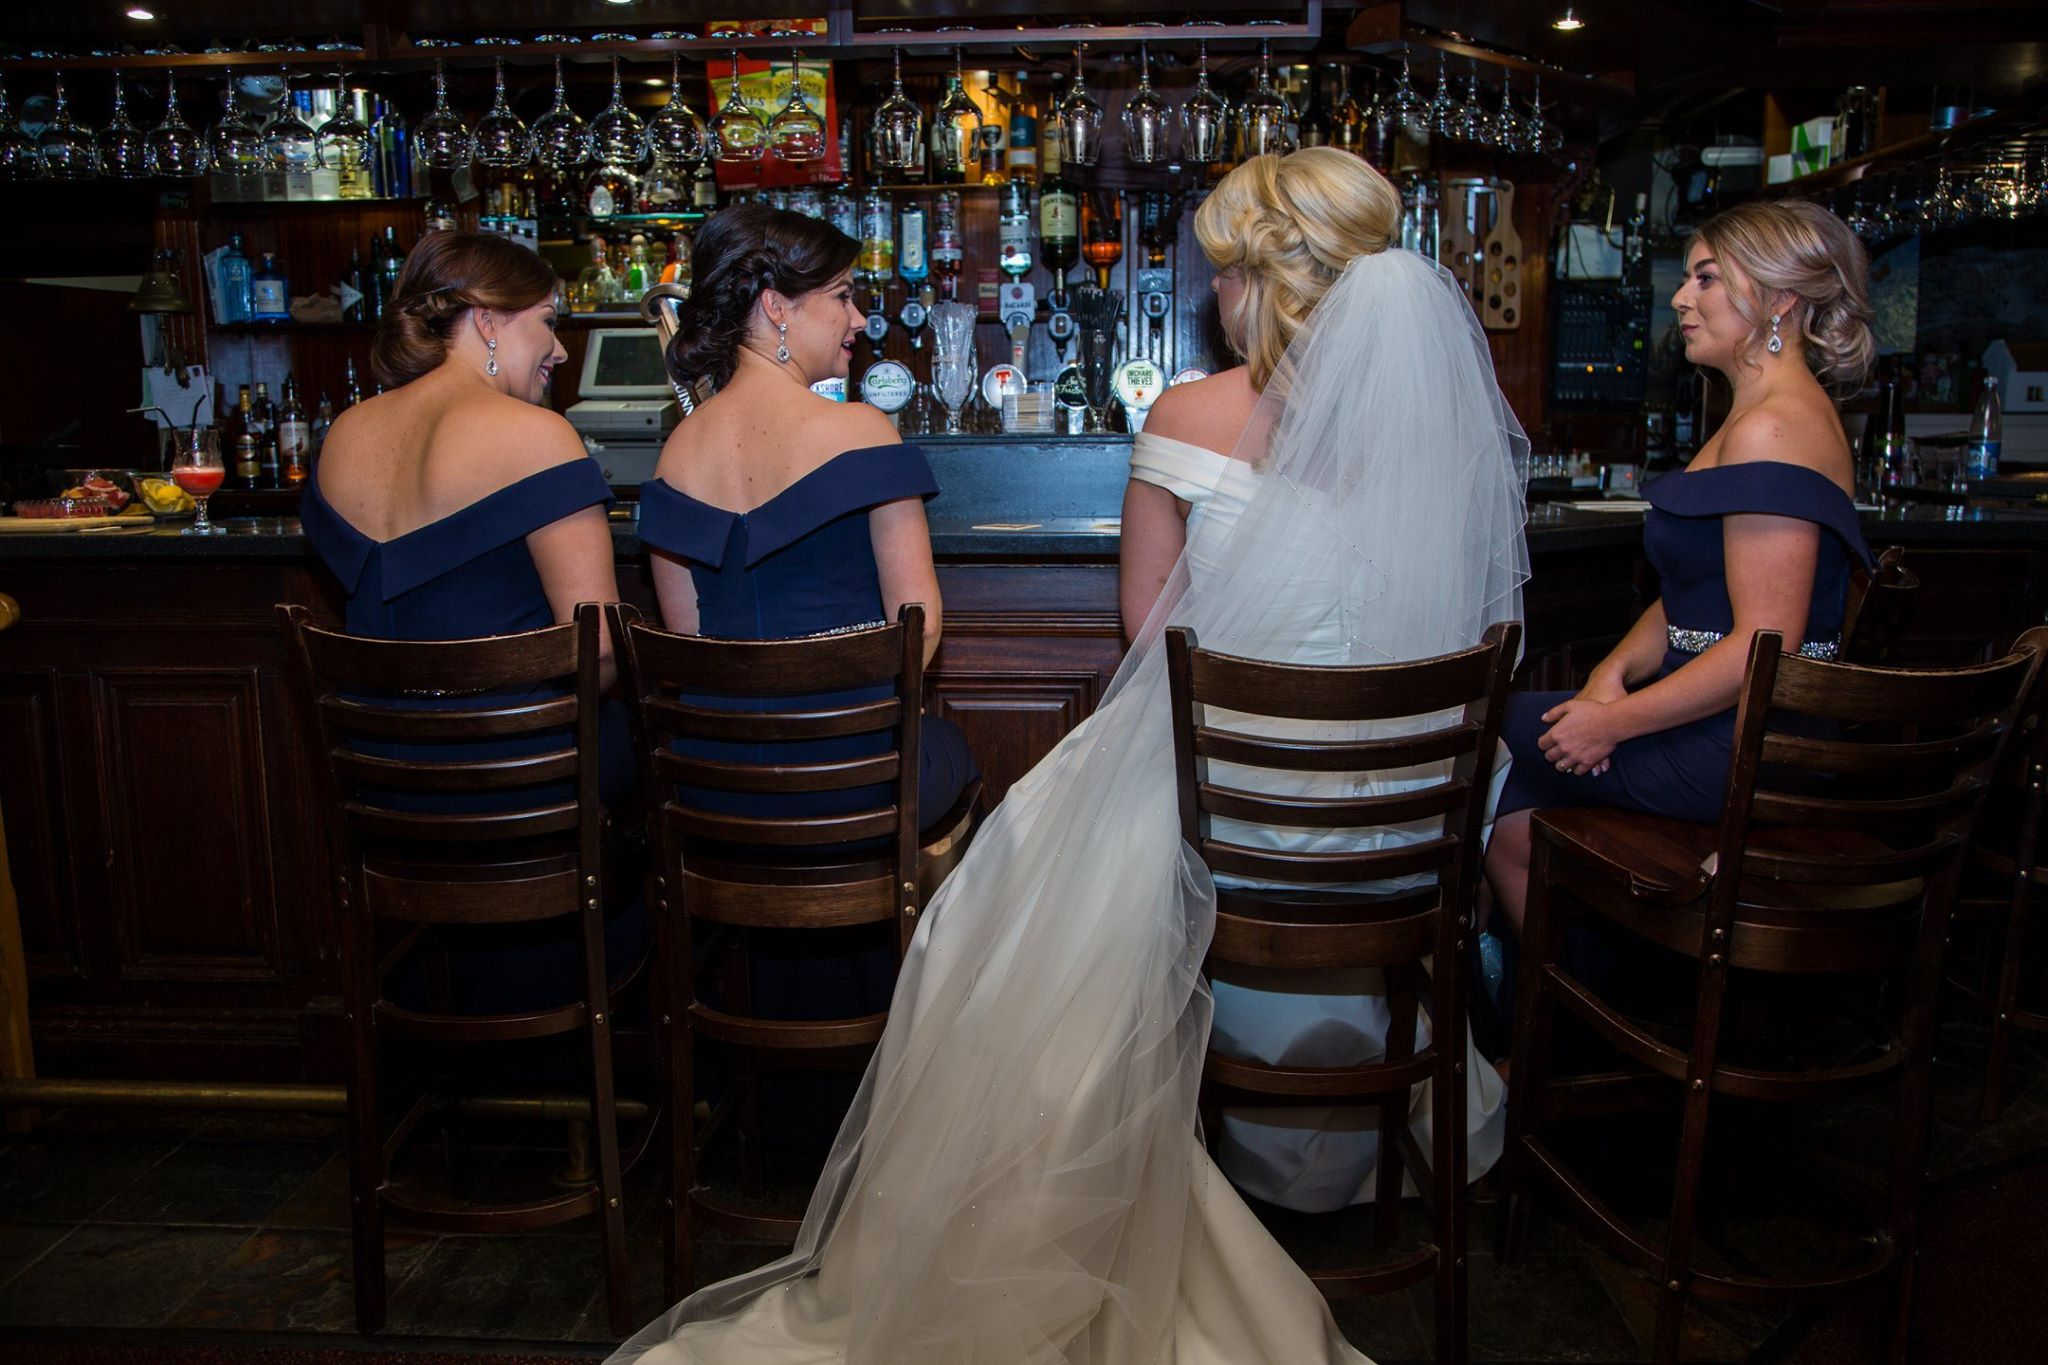 Young Love to Long-Distance: Carolanne + Rory at Inishowen Gateway